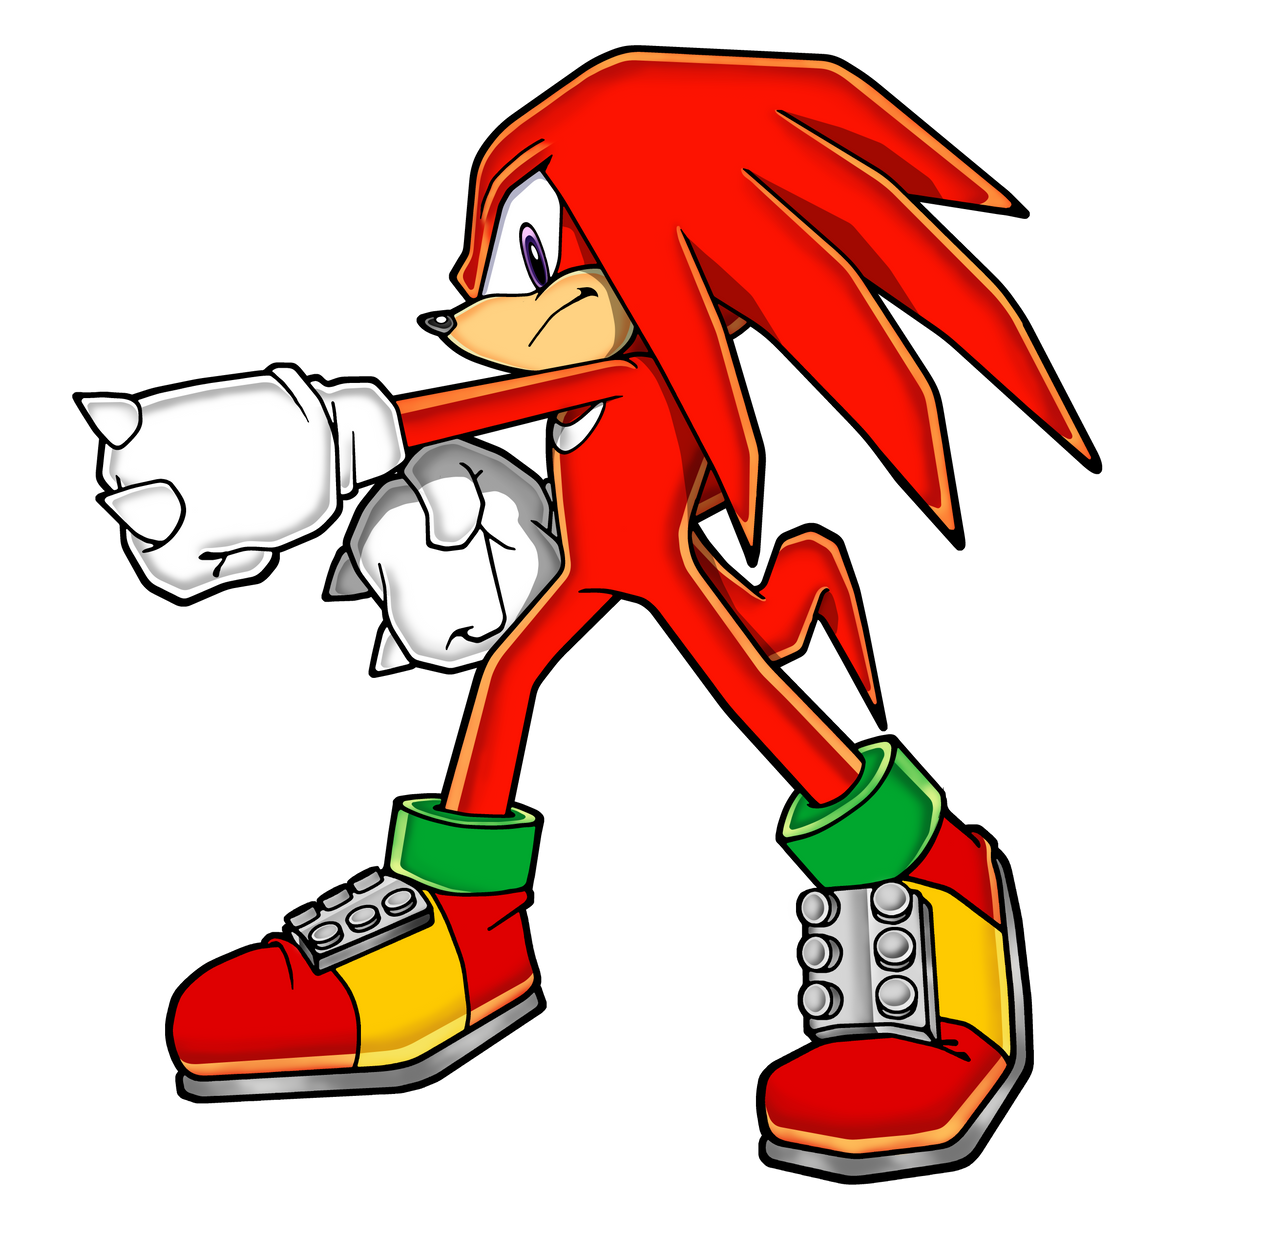 Gambar Kartun Sonic Knuckles: Knuckles The Echidna 2013 By Hypo-Thermic On DeviantArt